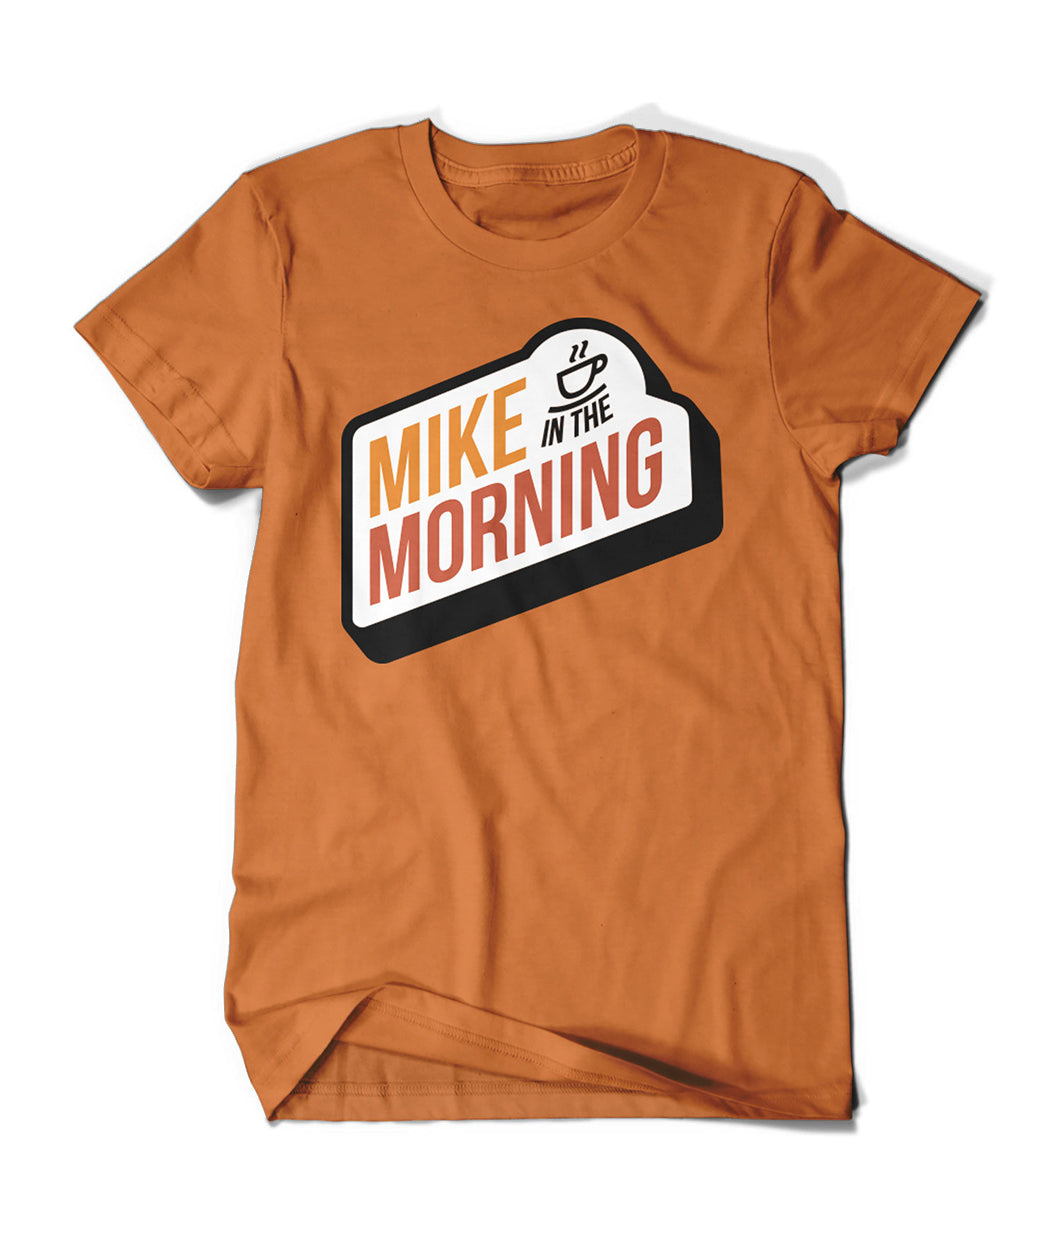 Mike In The Morning (Orange) Shirt